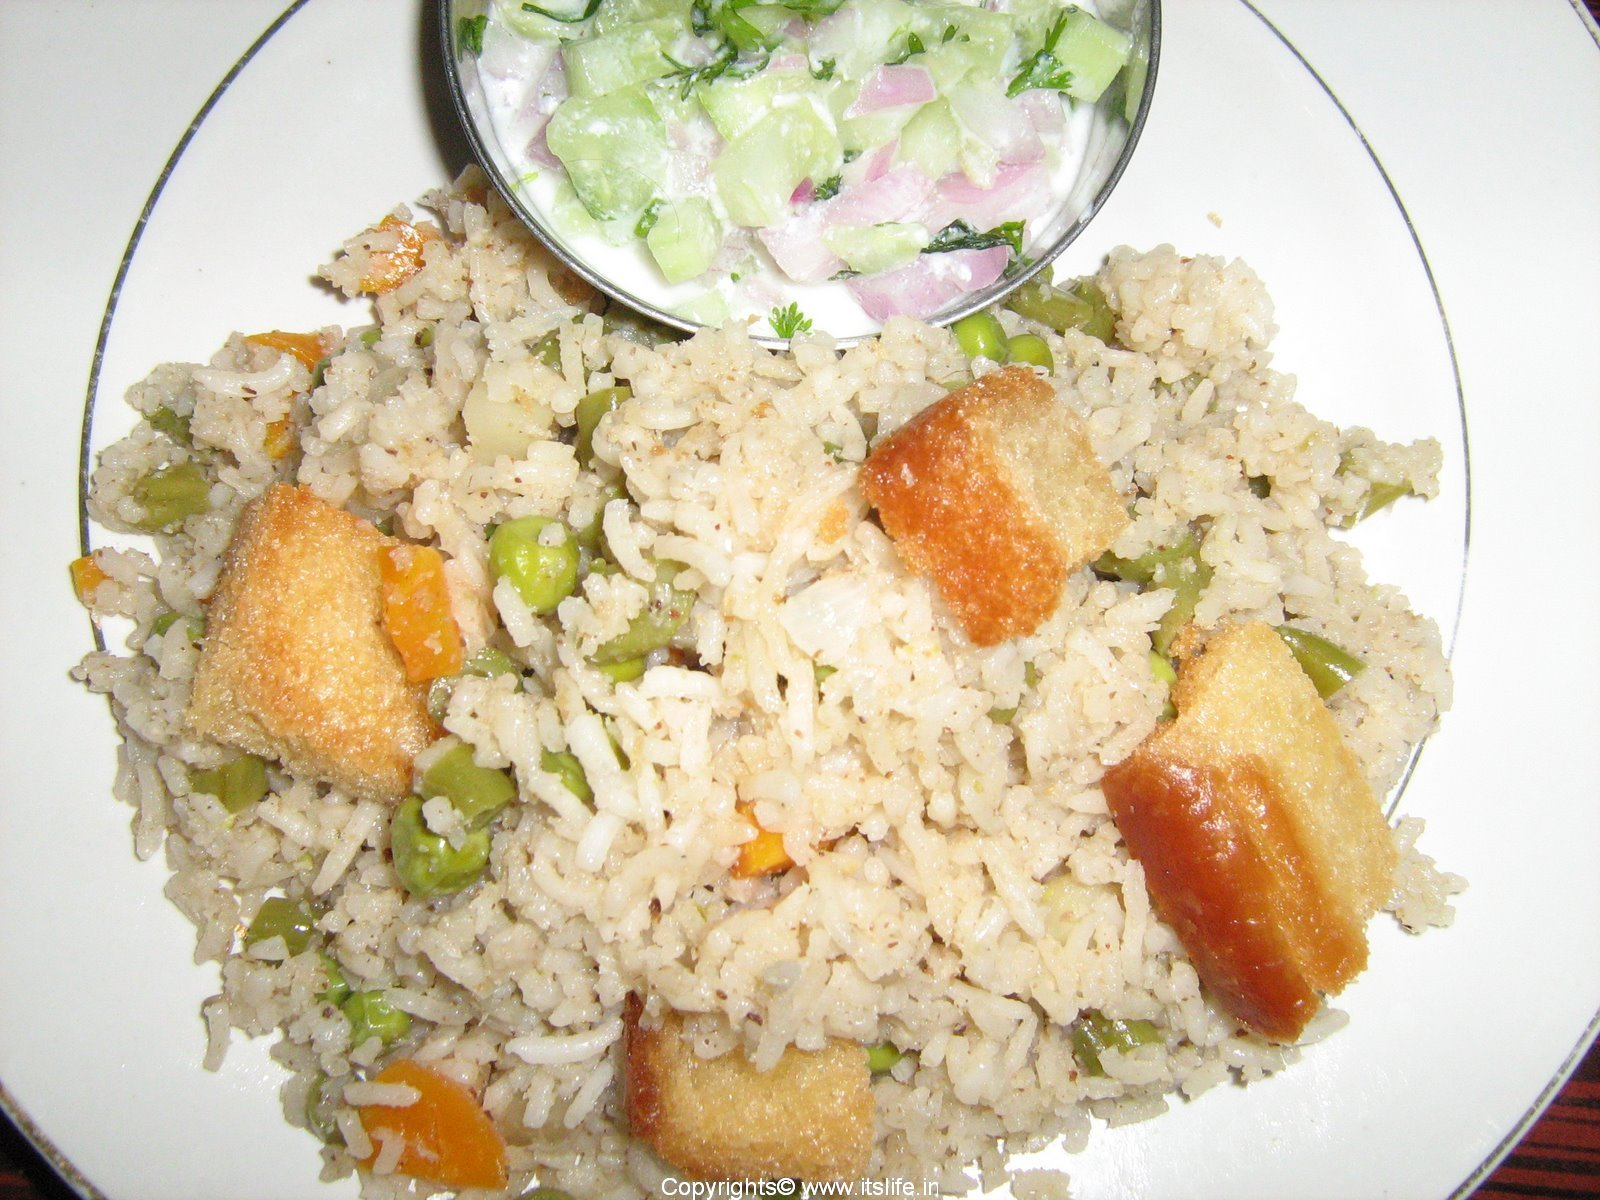 South Indian Vegetable Pulao | itslife.in